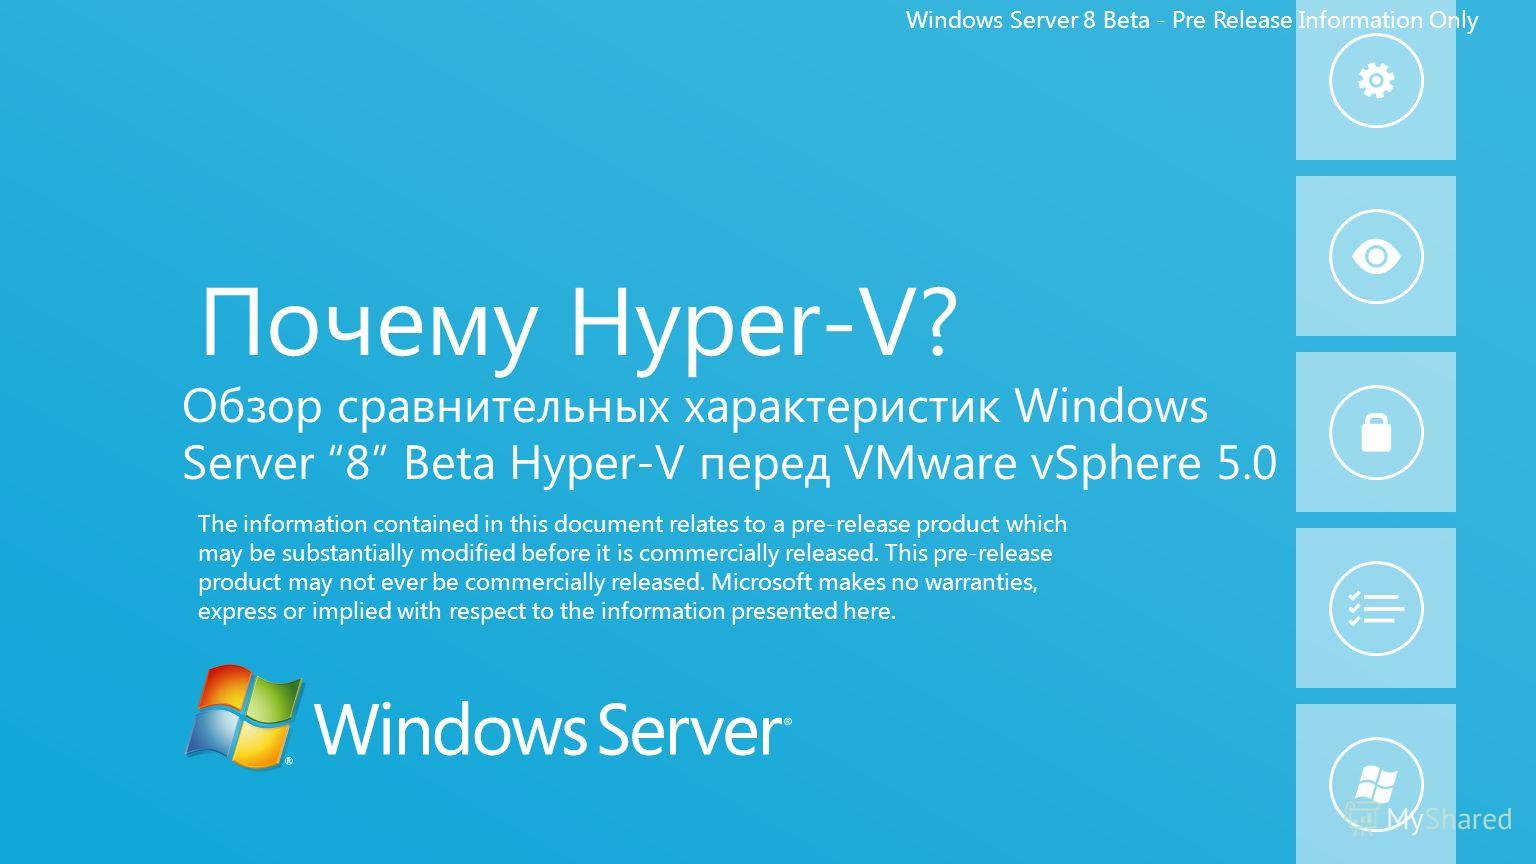 1 Почему Hyper-V? Обзор сравнительных характеристик Windows Server 8 Beta Hyper-V перед VMware vSphere 5.0 The information contained in this document relates to a pre-release product which may be substantially modified before it is commercially relea